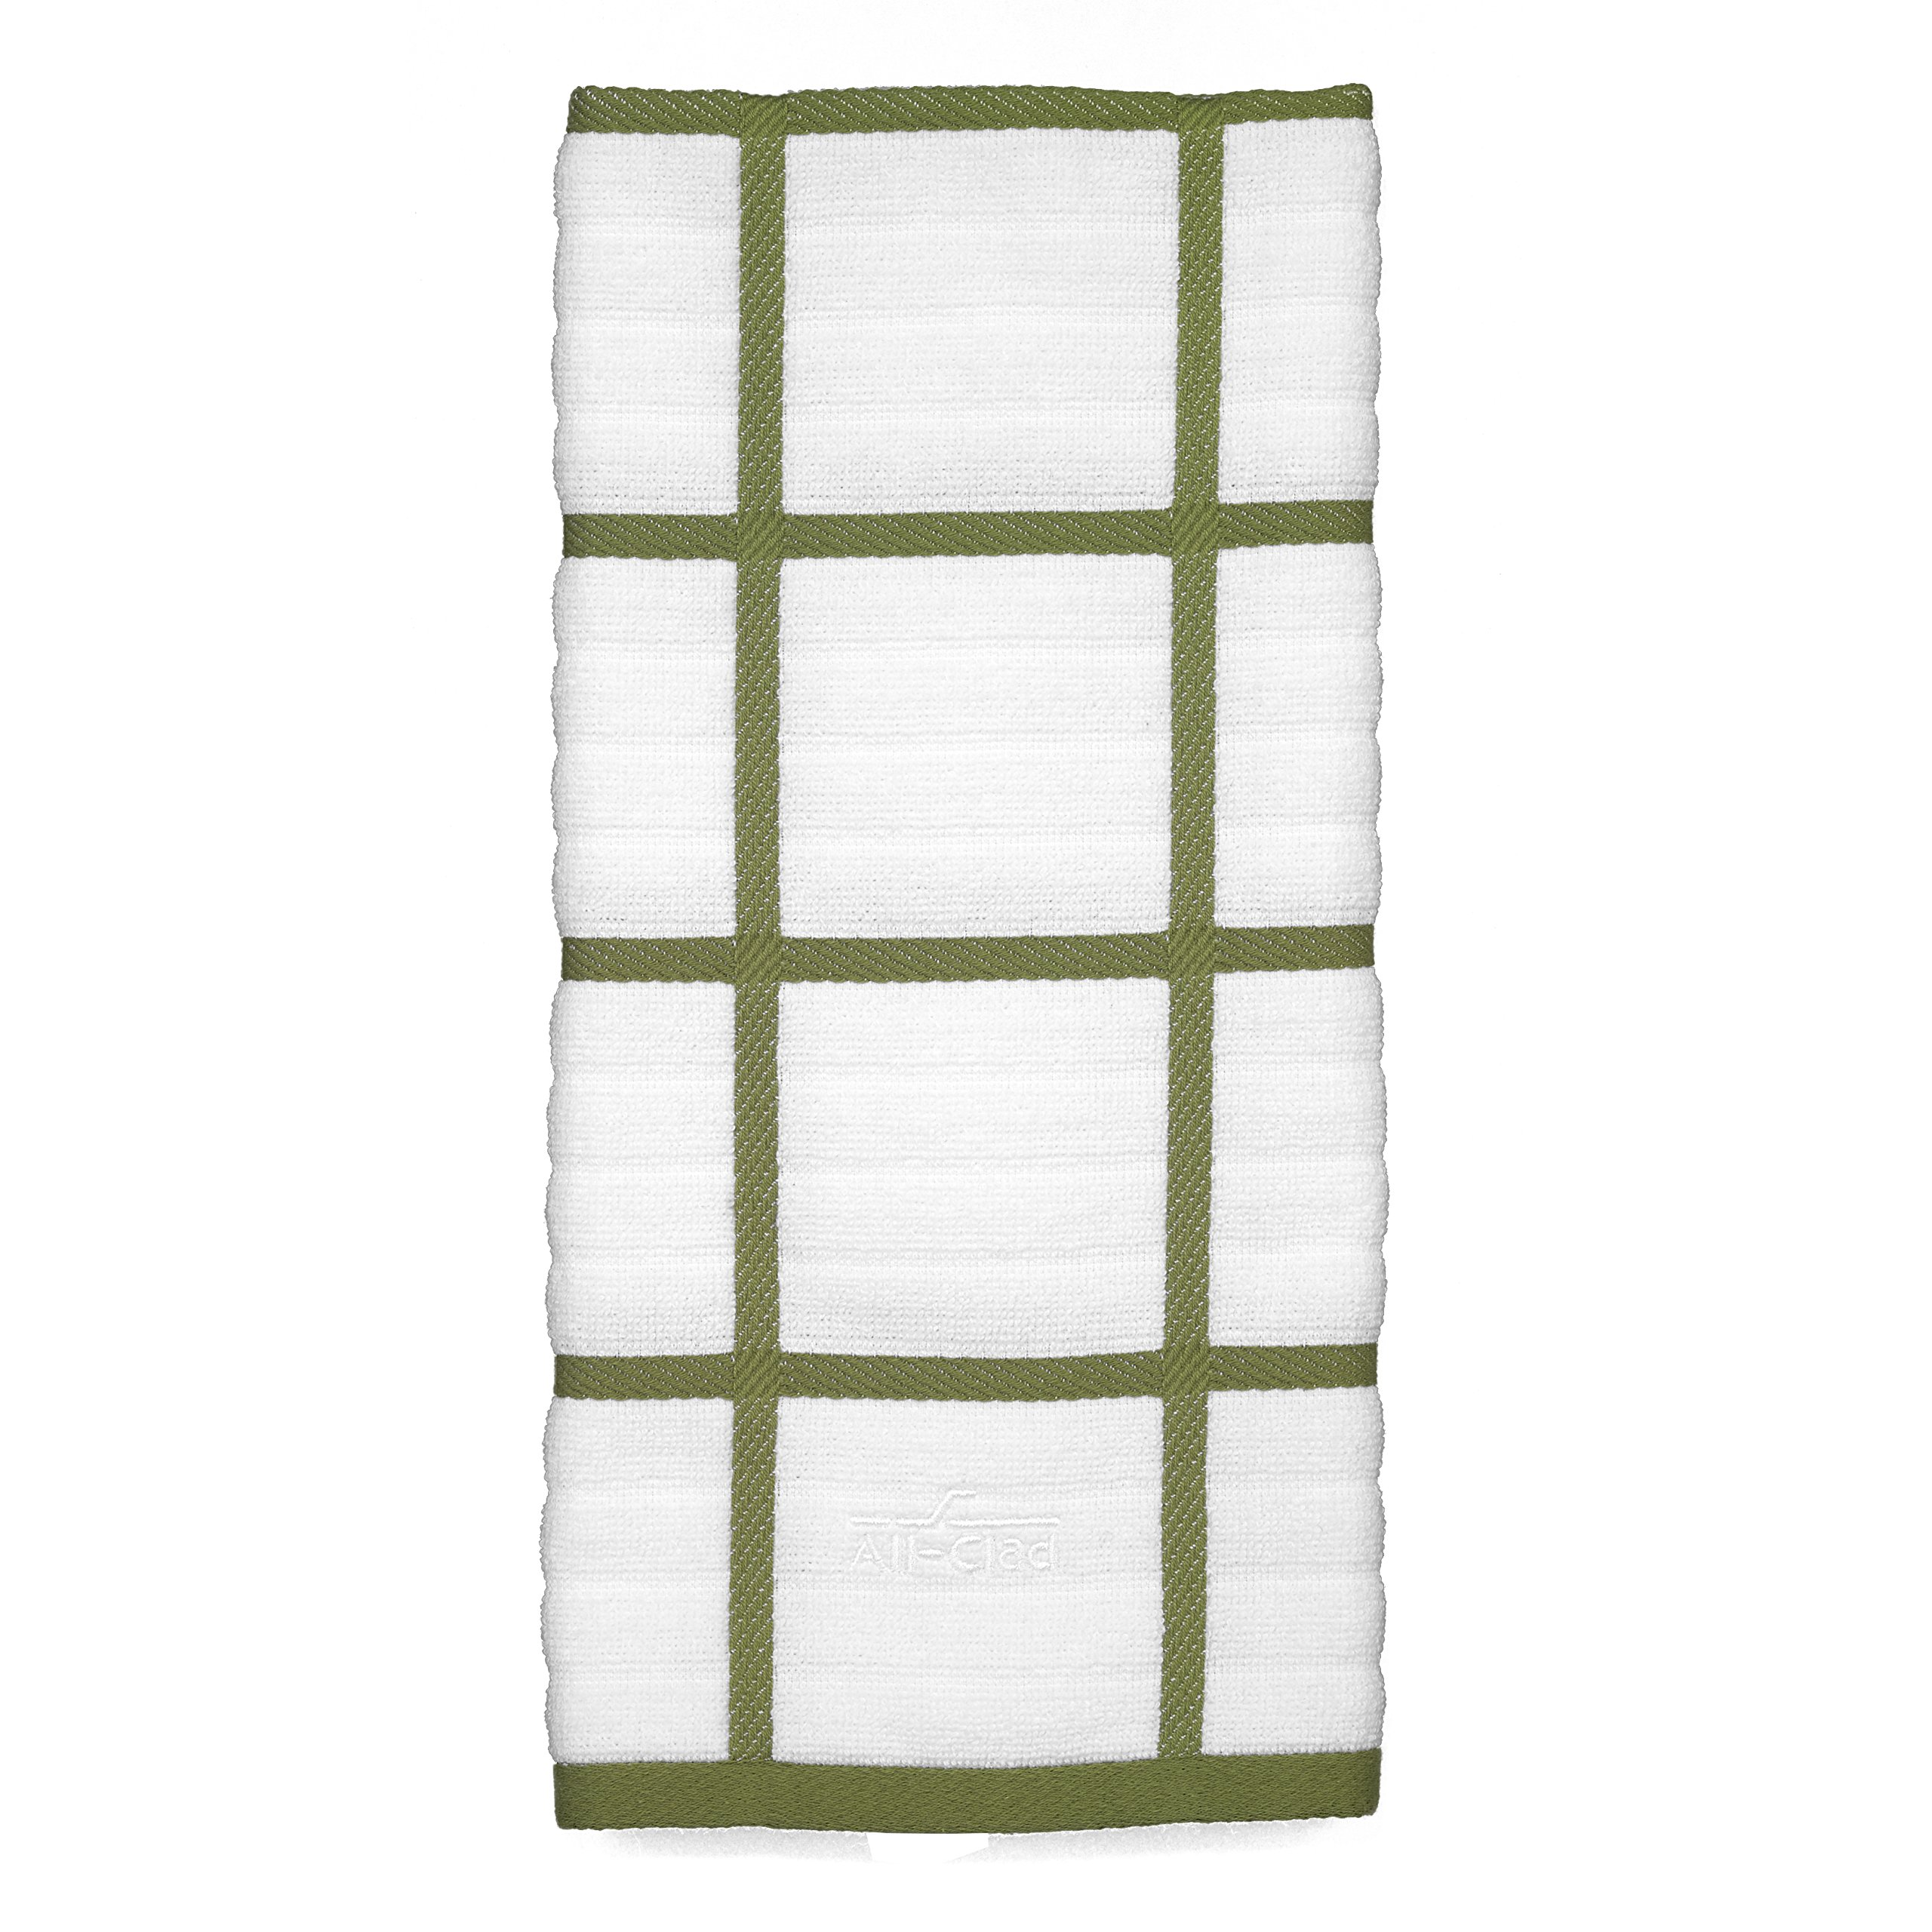 All Clad Textiles 100-Percent Combed Terry Loop Cotton Kitchen Towel, Oversized, Highly Absorbent and Anti-Microbial, 17-inch by 30-inch, Checked, Sage Green